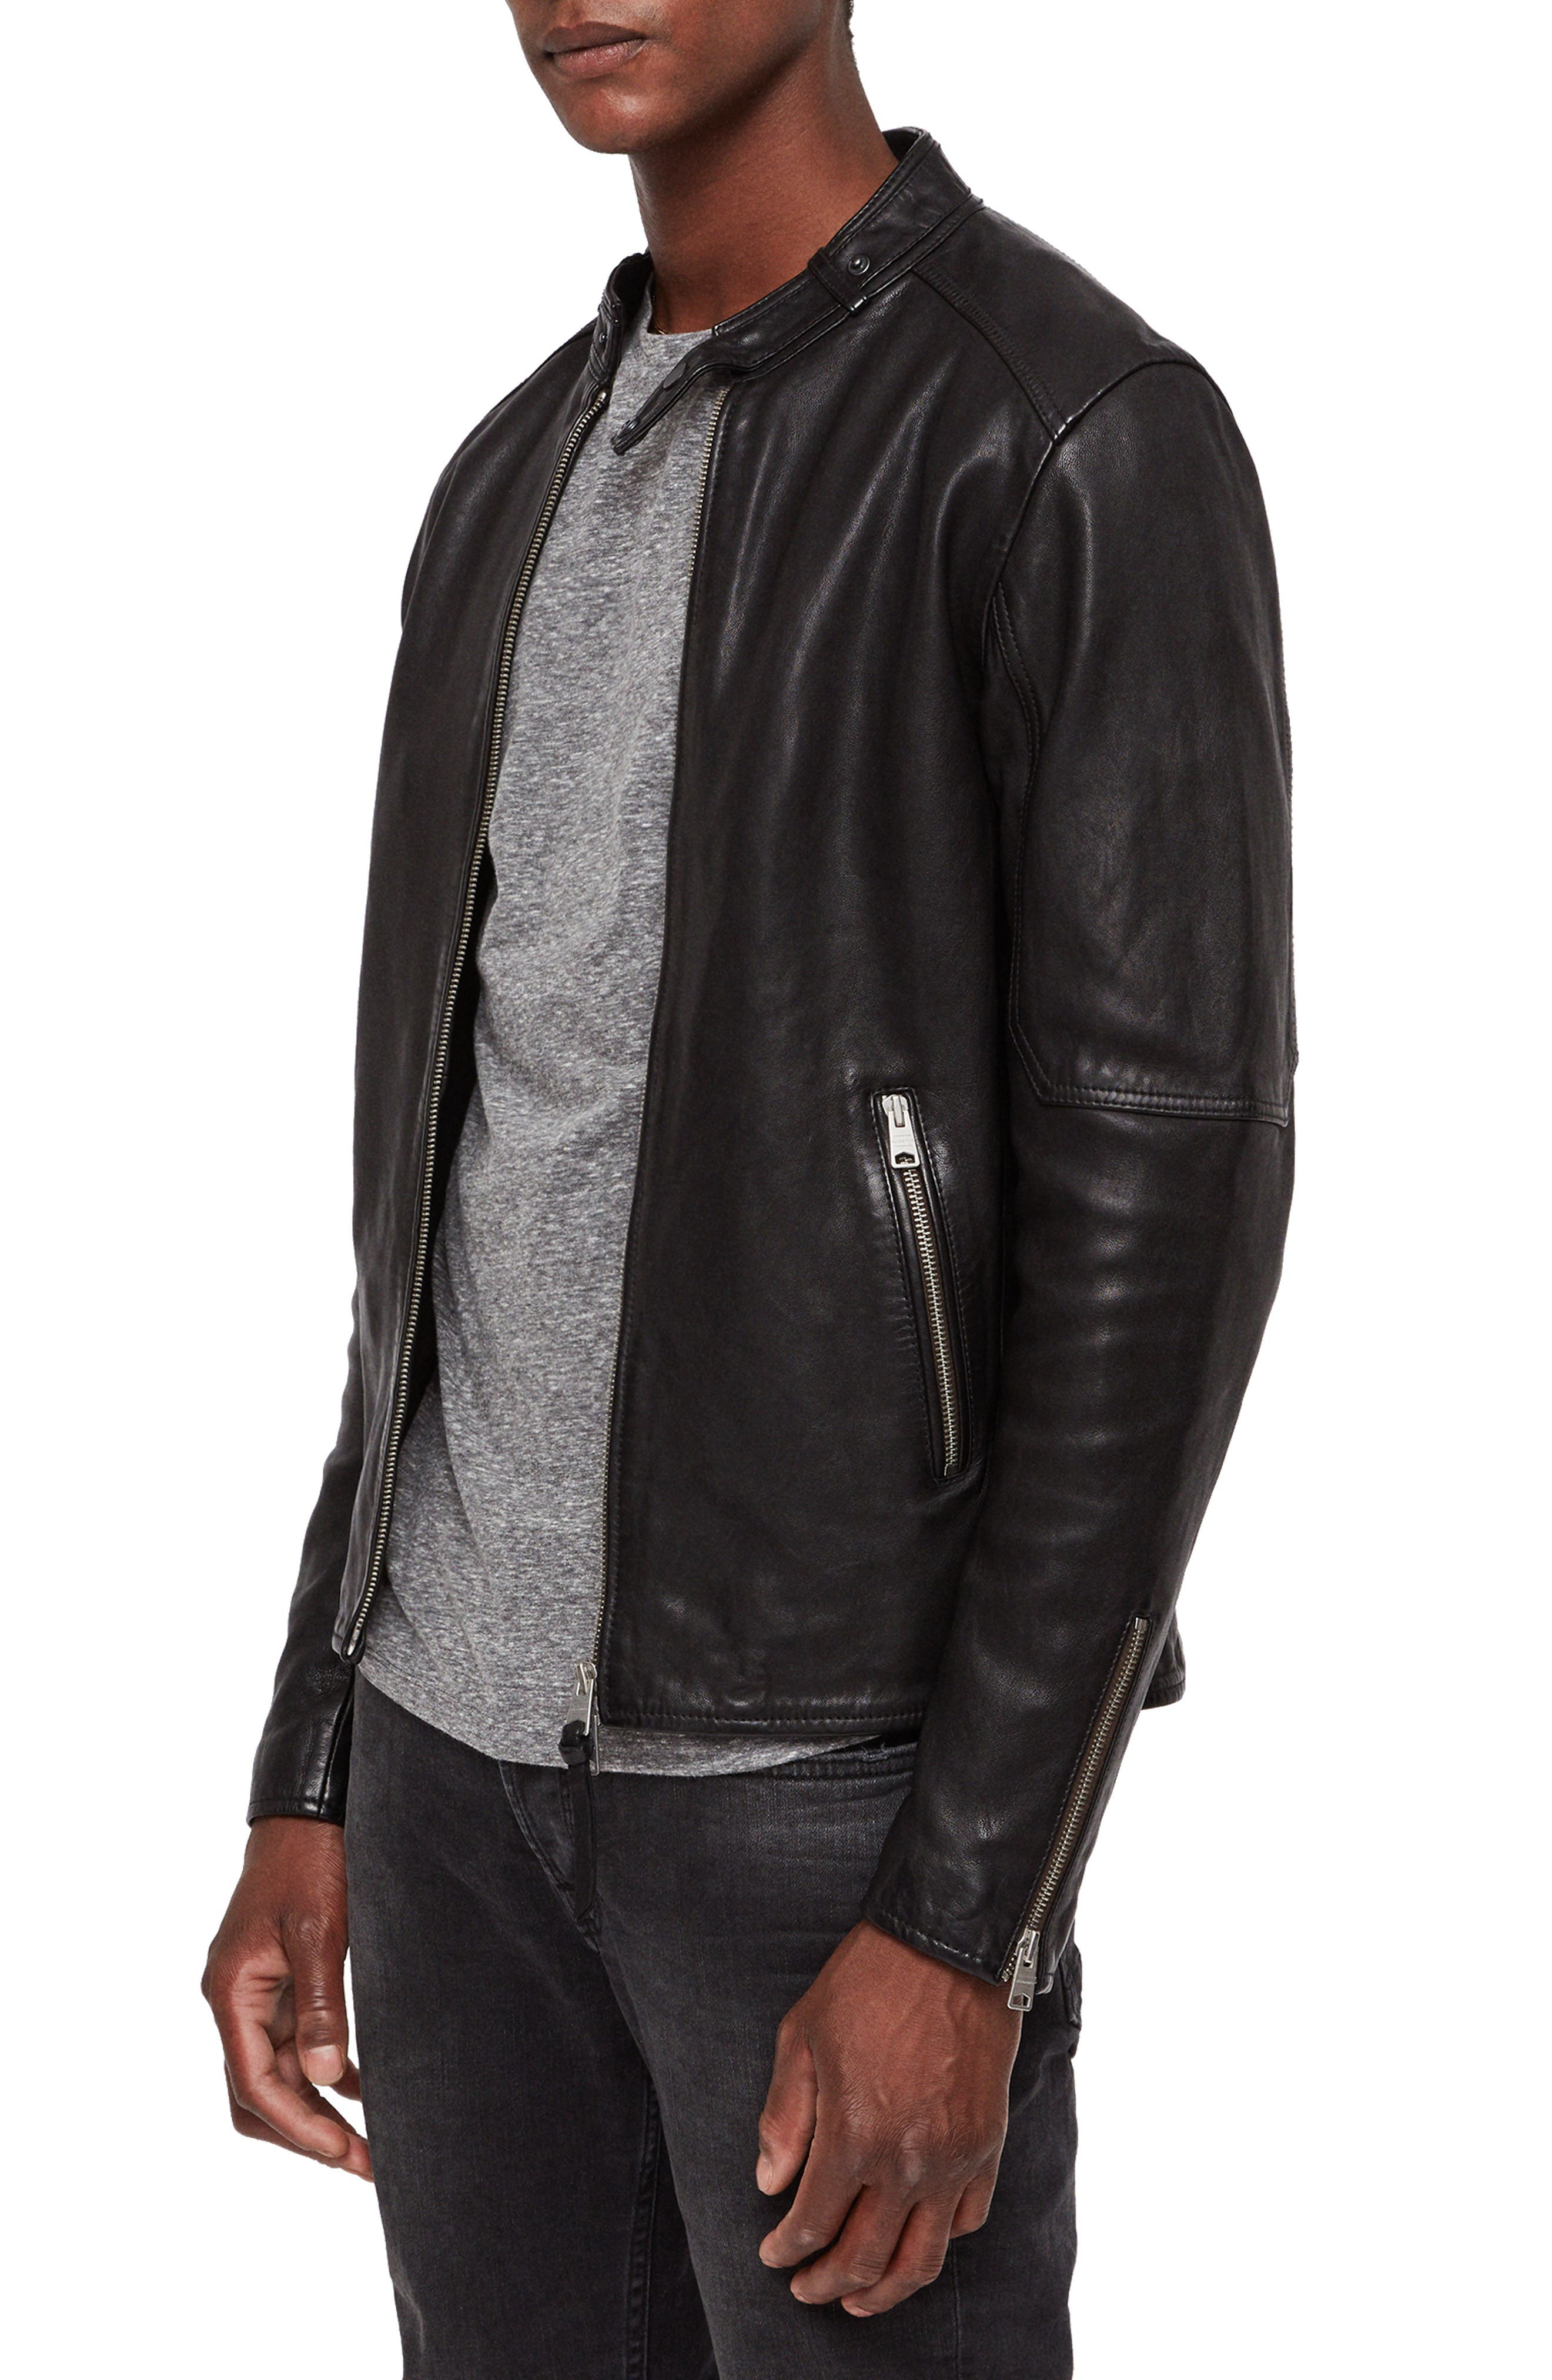 Cora Leather Jacket,                             Alternate thumbnail 3, color,                             003